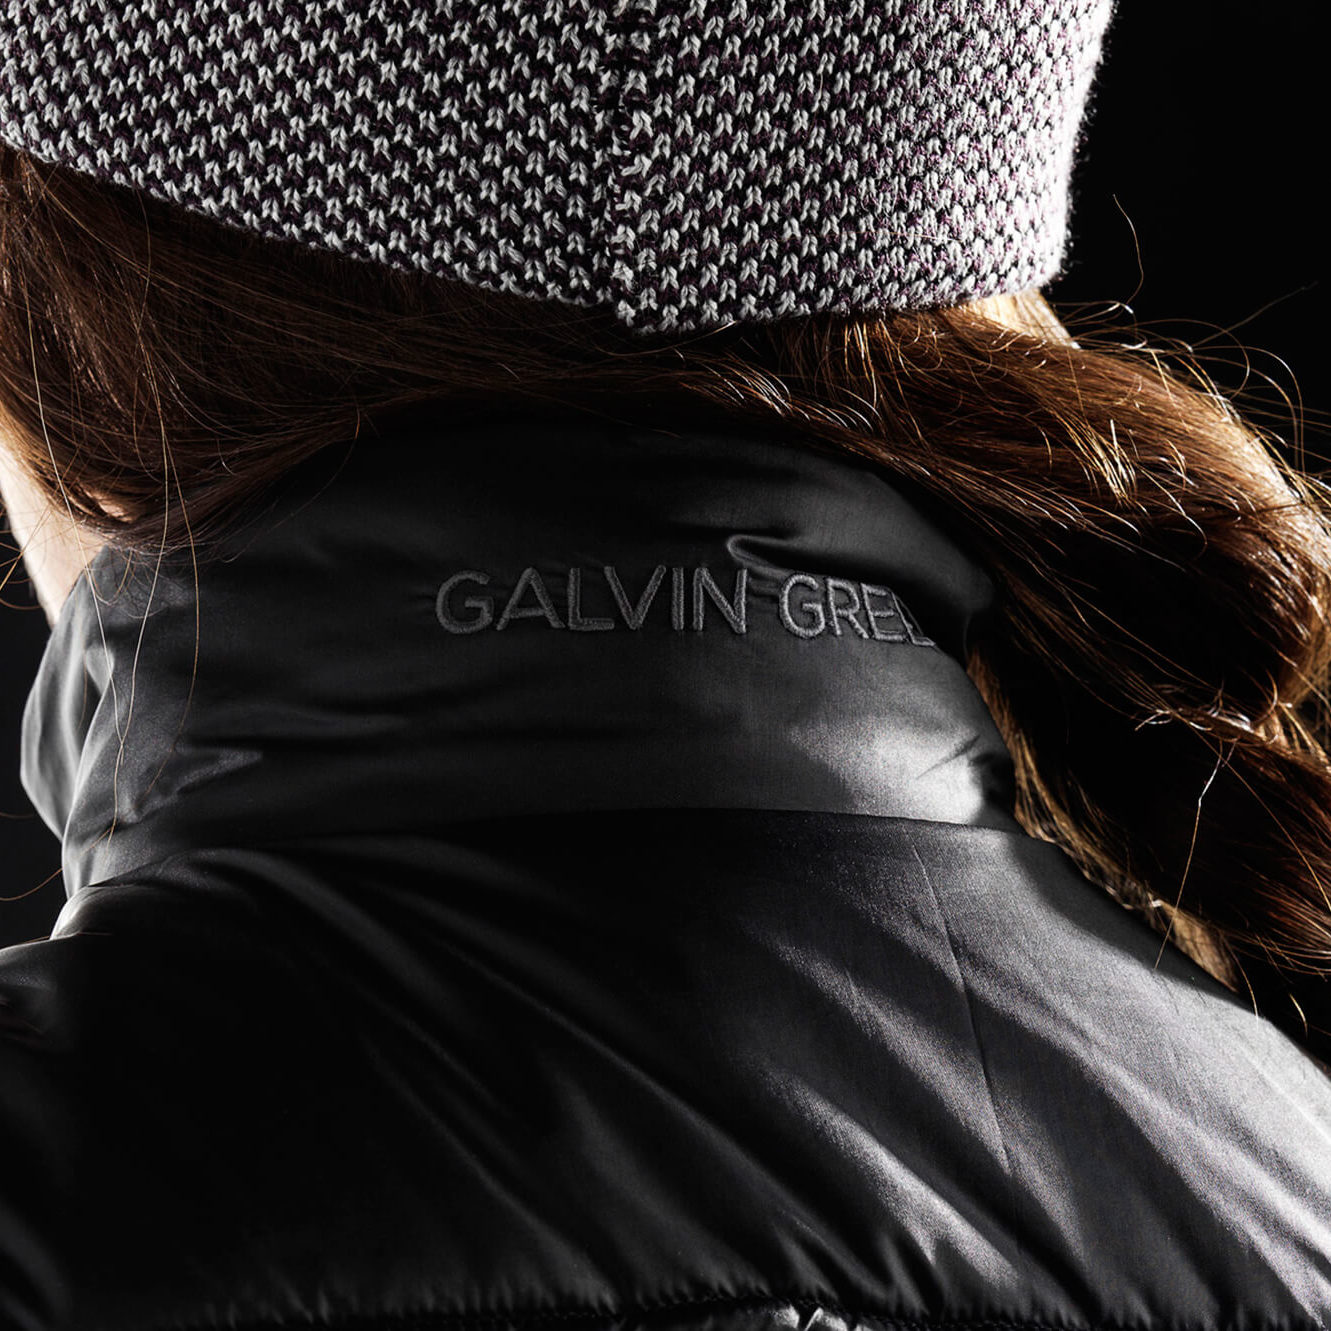 Galvin Green | Buffalo.Agency